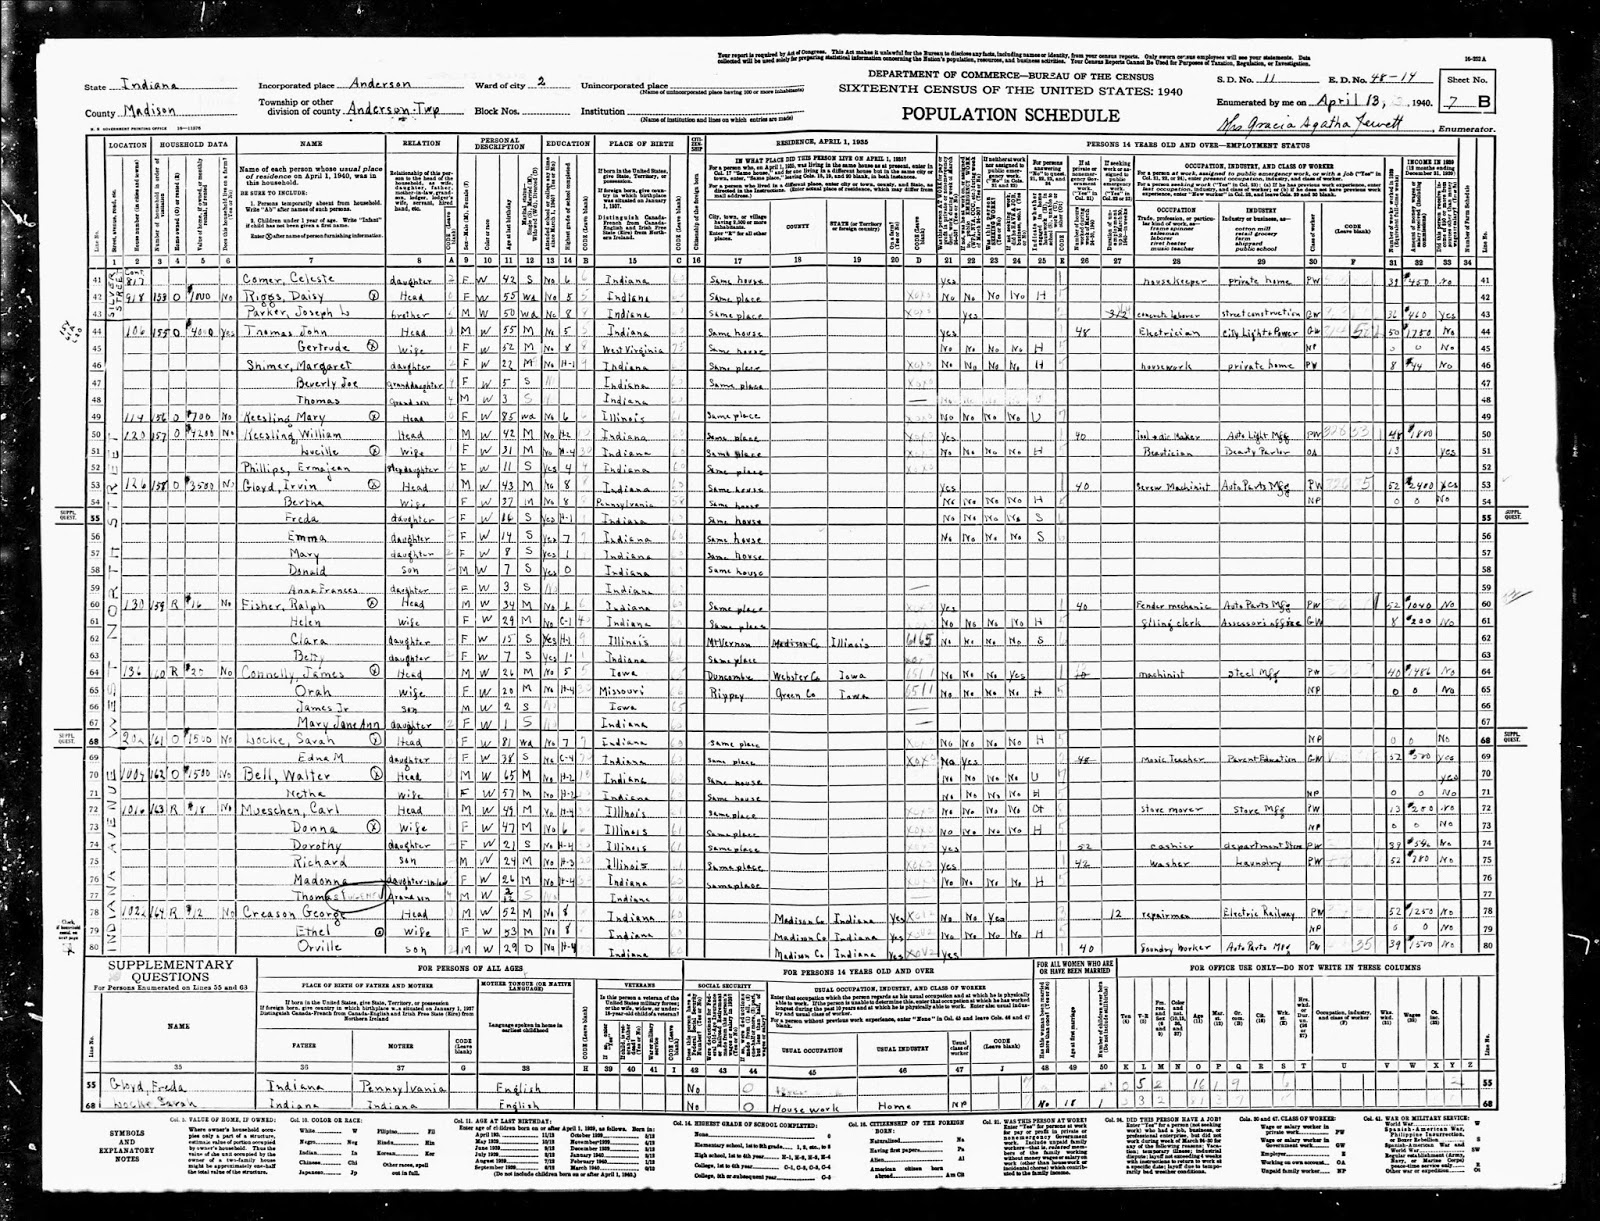 Indiana st joseph county wyatt - 1940 Us Census Madison County Indiana Population Schedule Ward 2 Anderson Enumeration District Ed 48 14 Sd 11 Sheet 7b Household 159